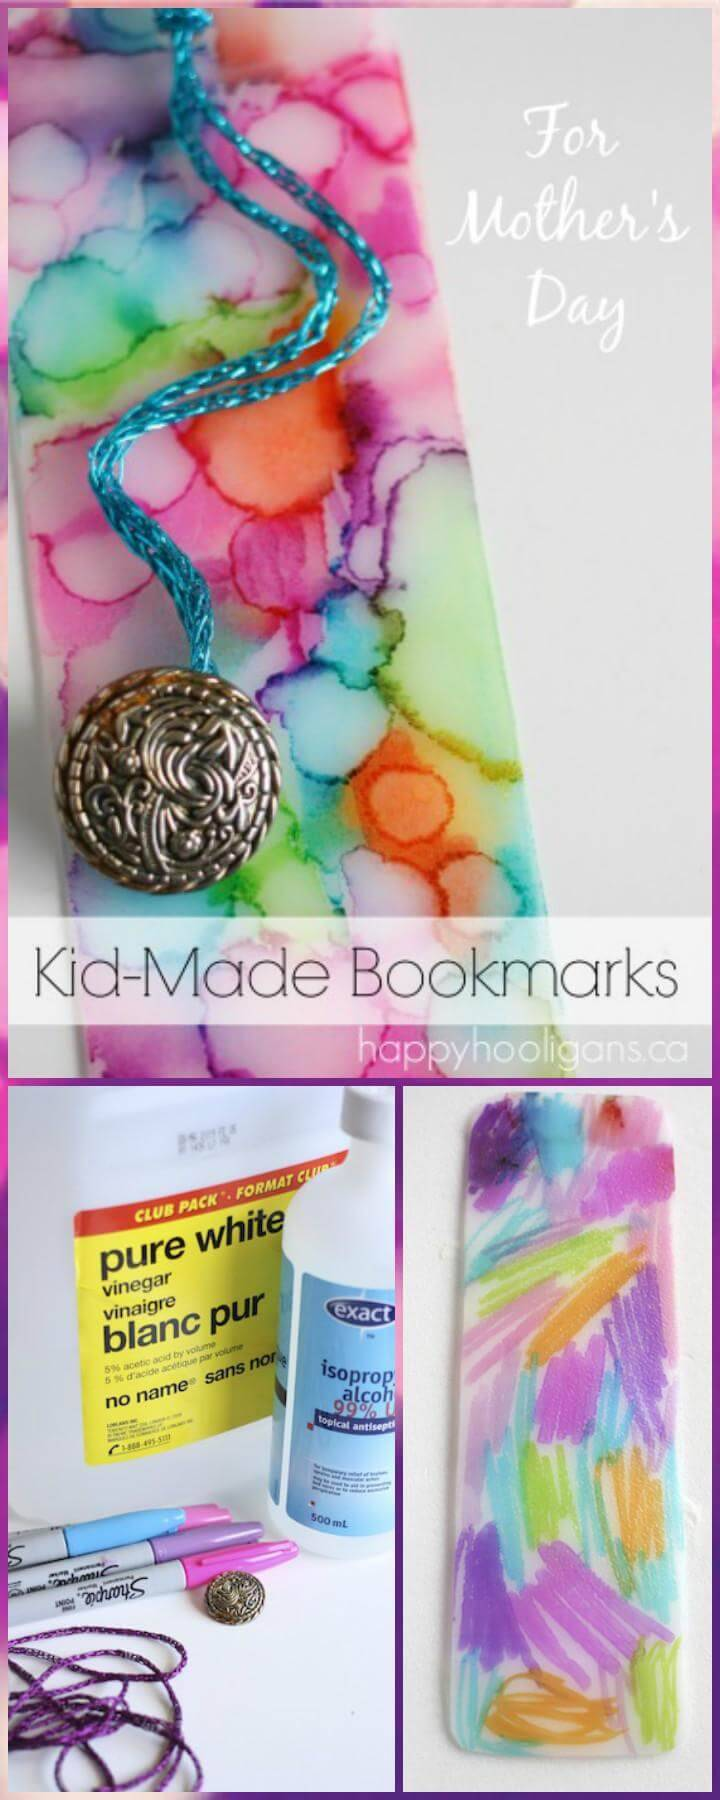 DIY Handmade Bookmarks for Mother's Day